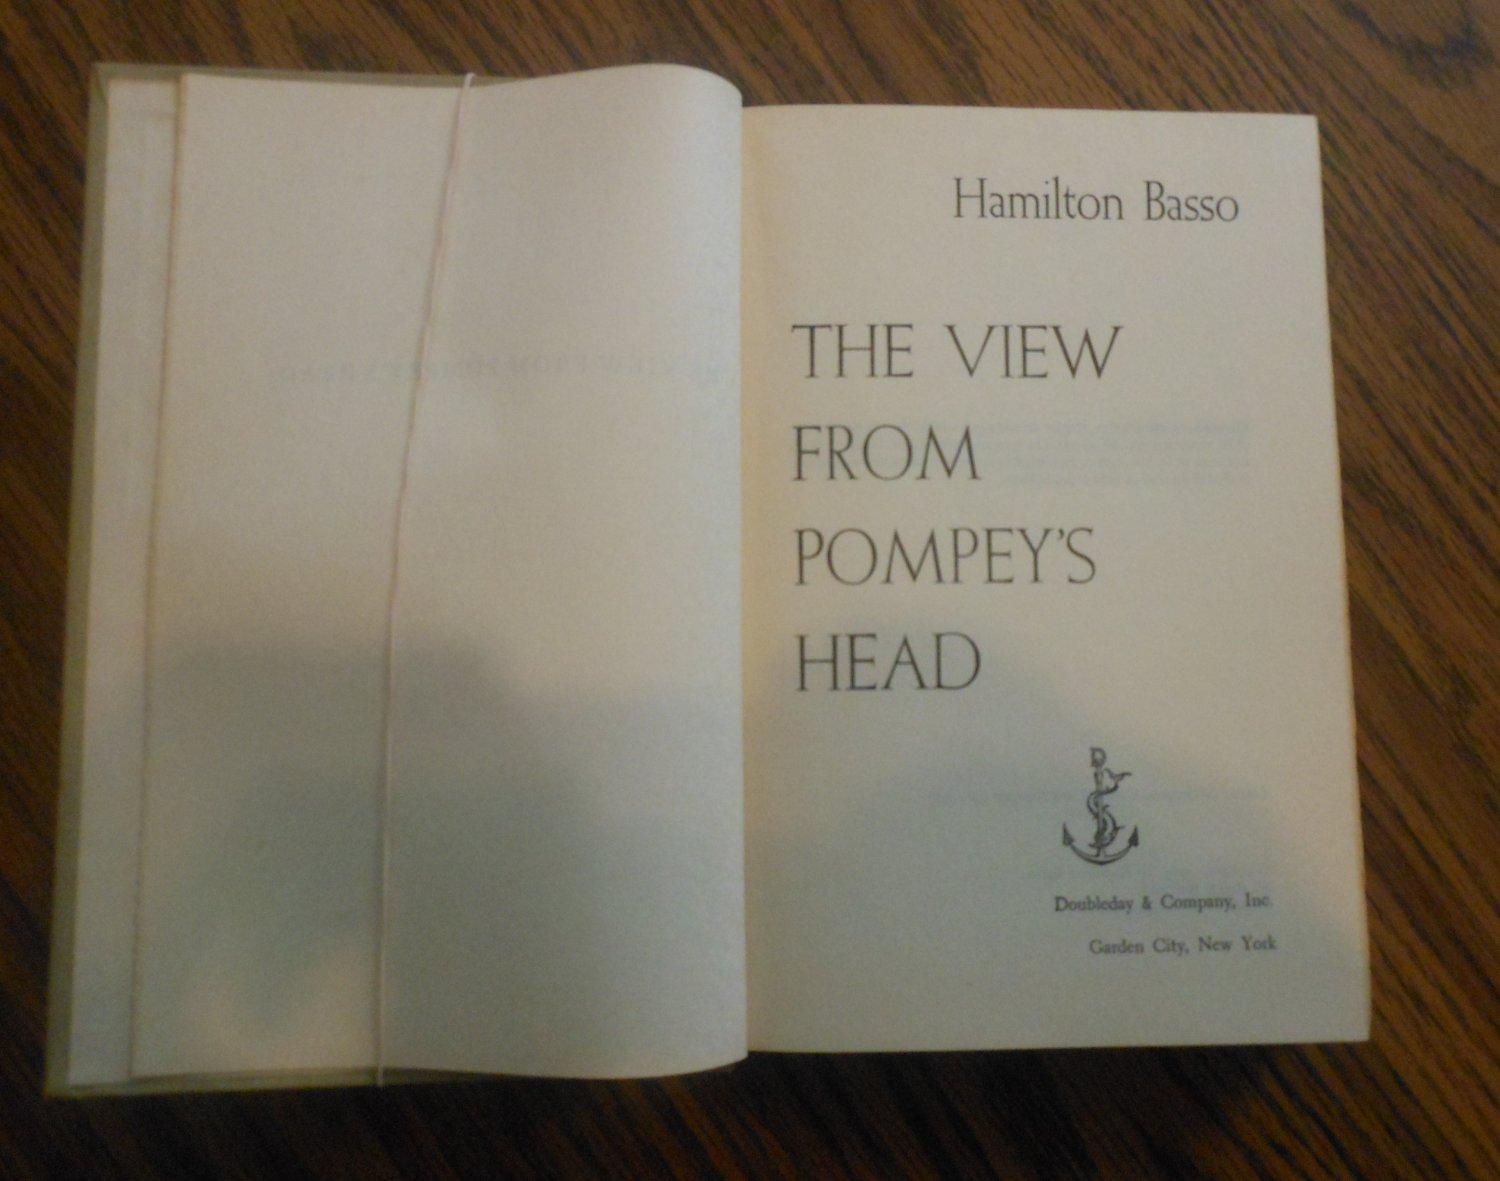 The View from Pompey's Head by Hamilton Basso 1954